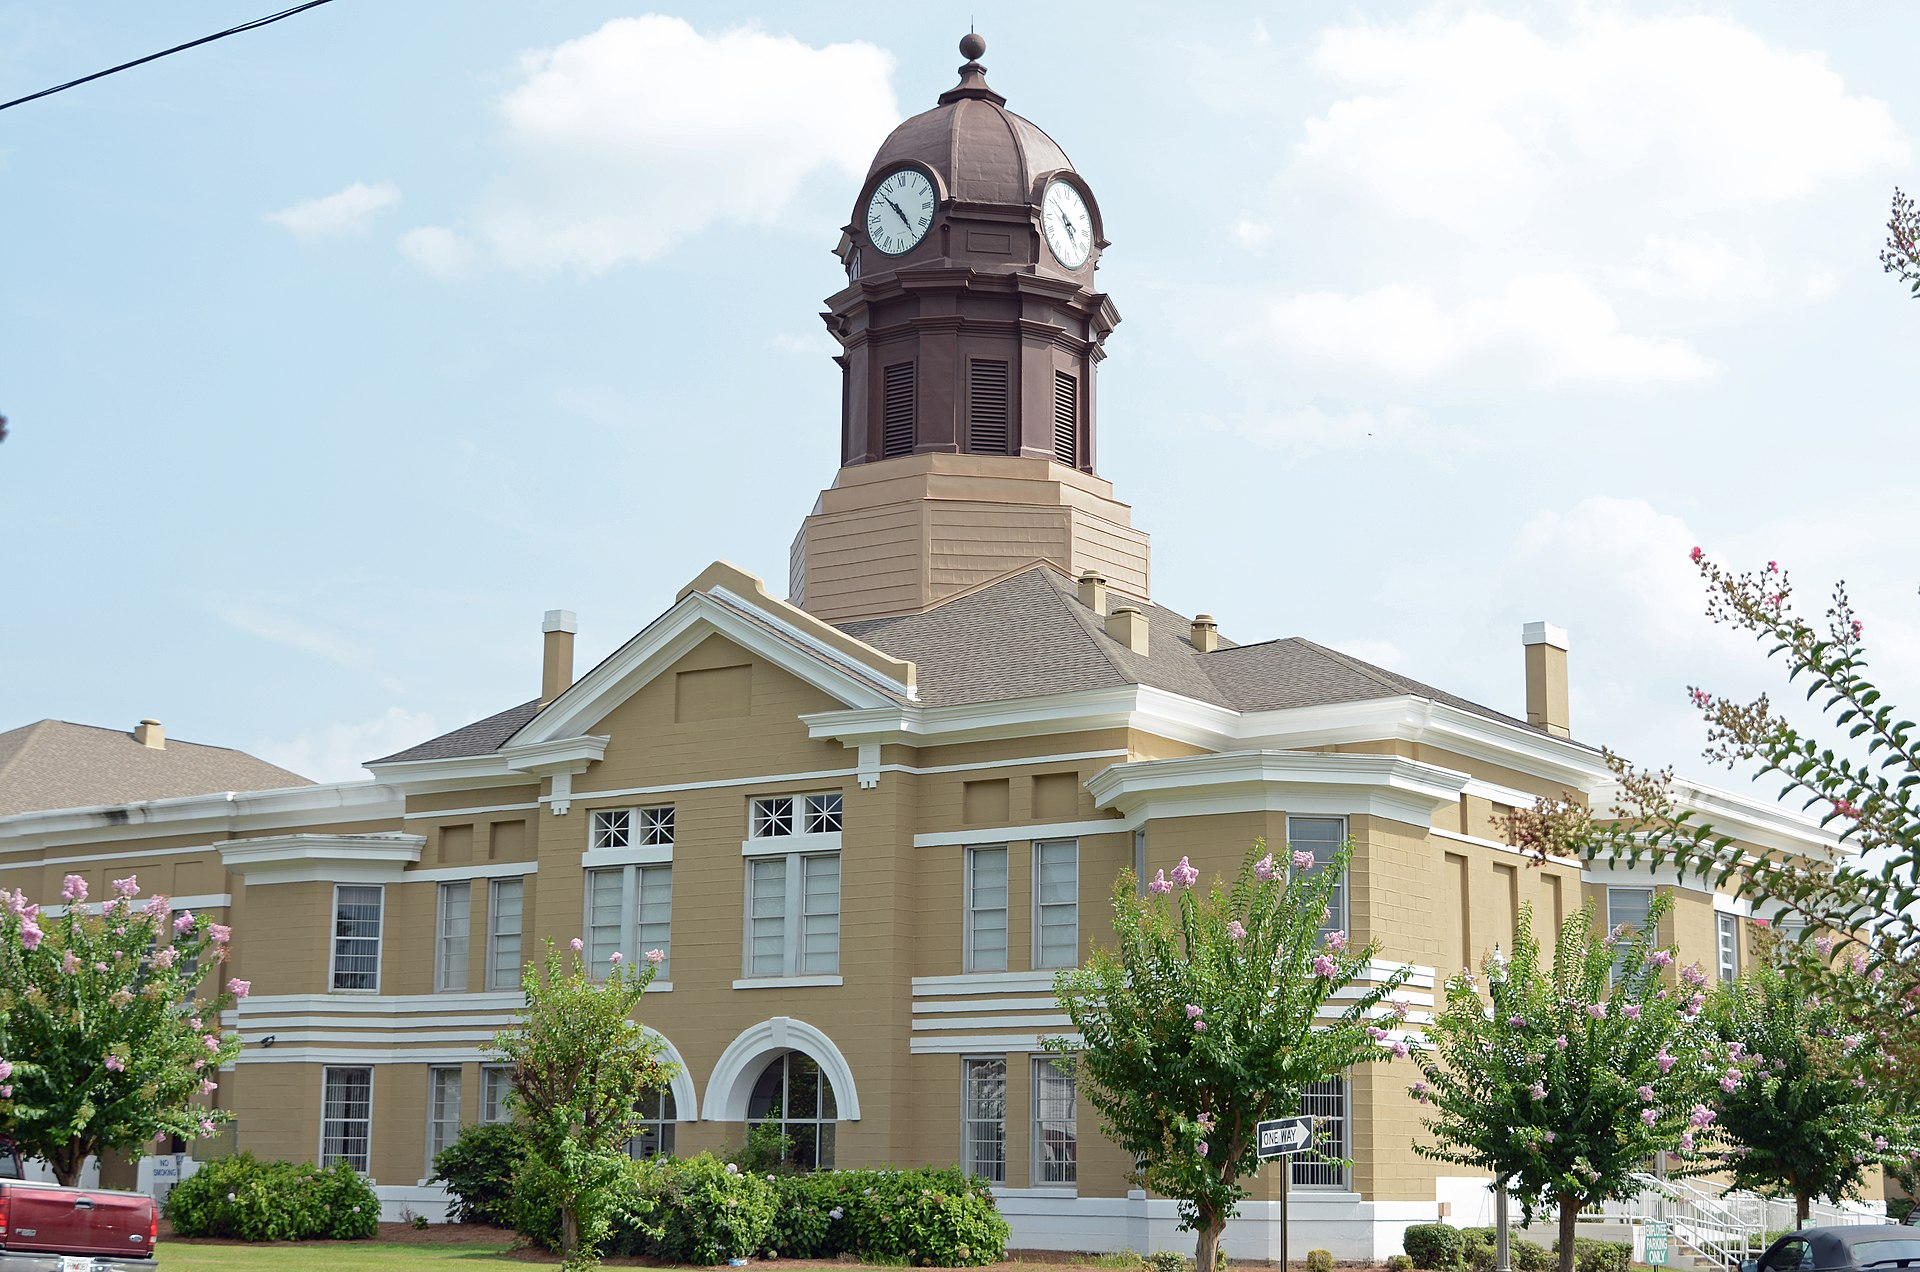 jefferson davis county dating Welcome to the jefferson davis county circuit clerk web page here you will find information about our office and descriptions of our duties, plus our.